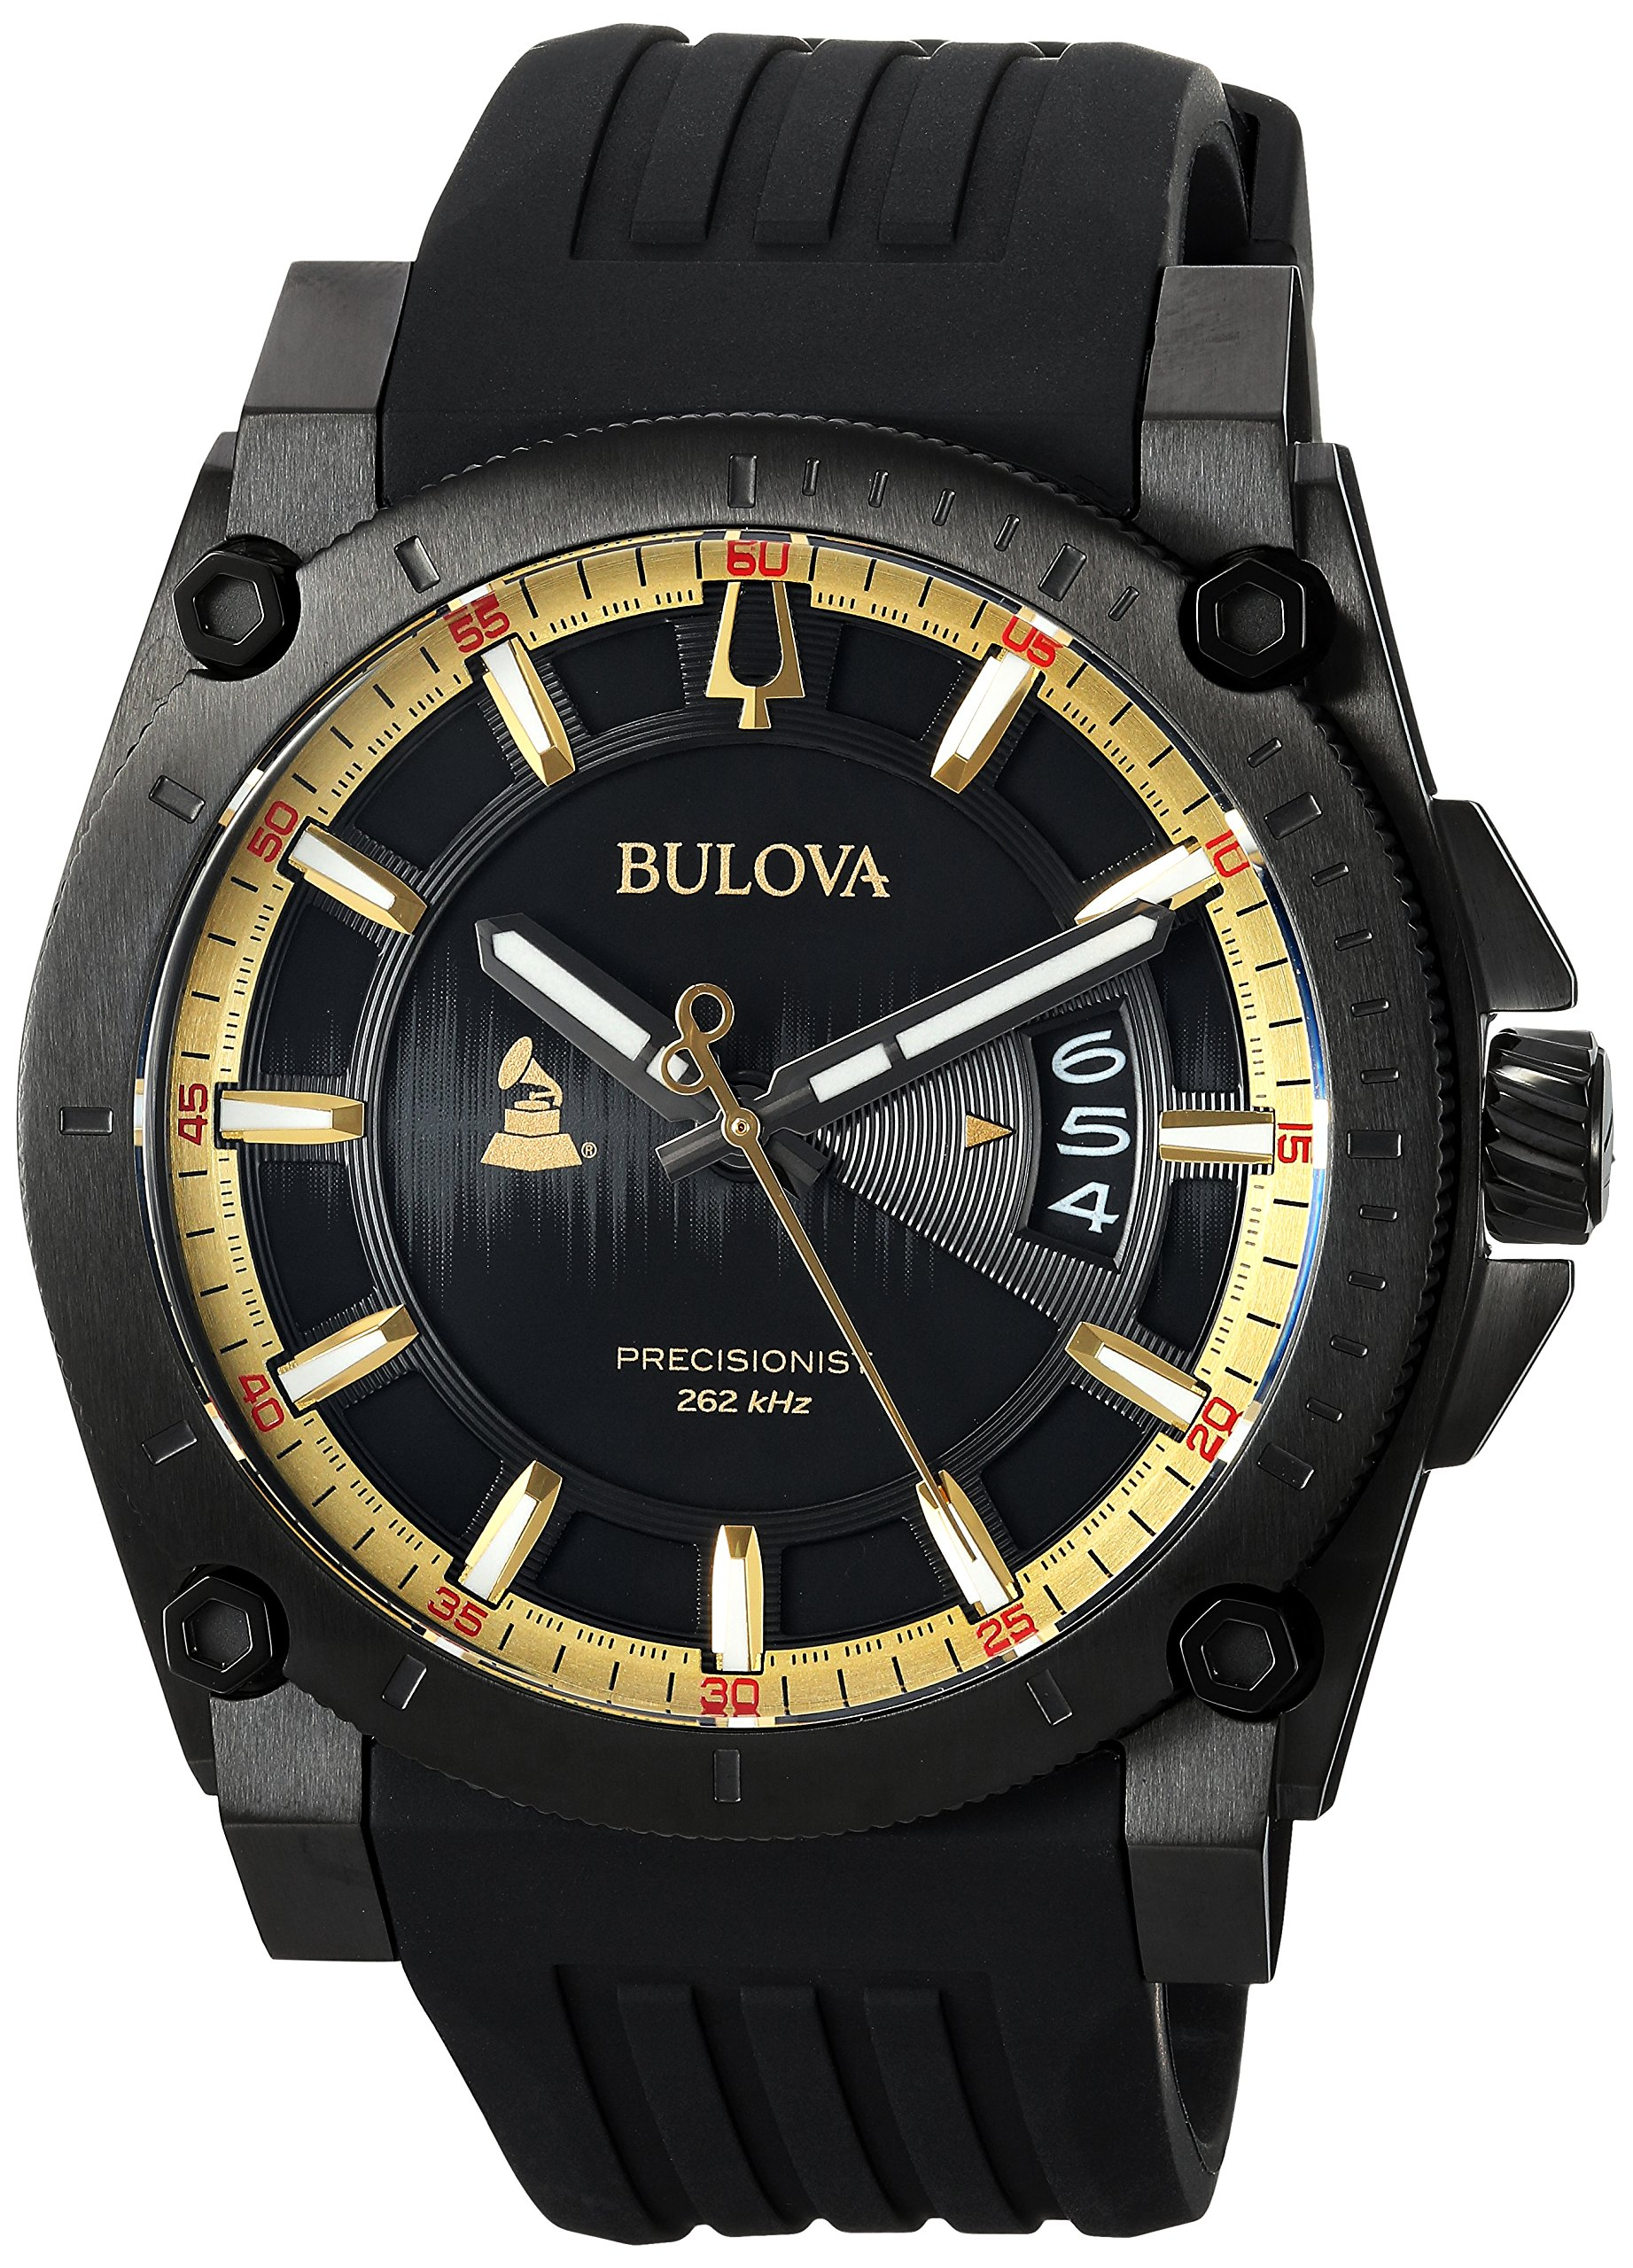 Bulova Men's Special GRAMMY Edition Precisionist Watch